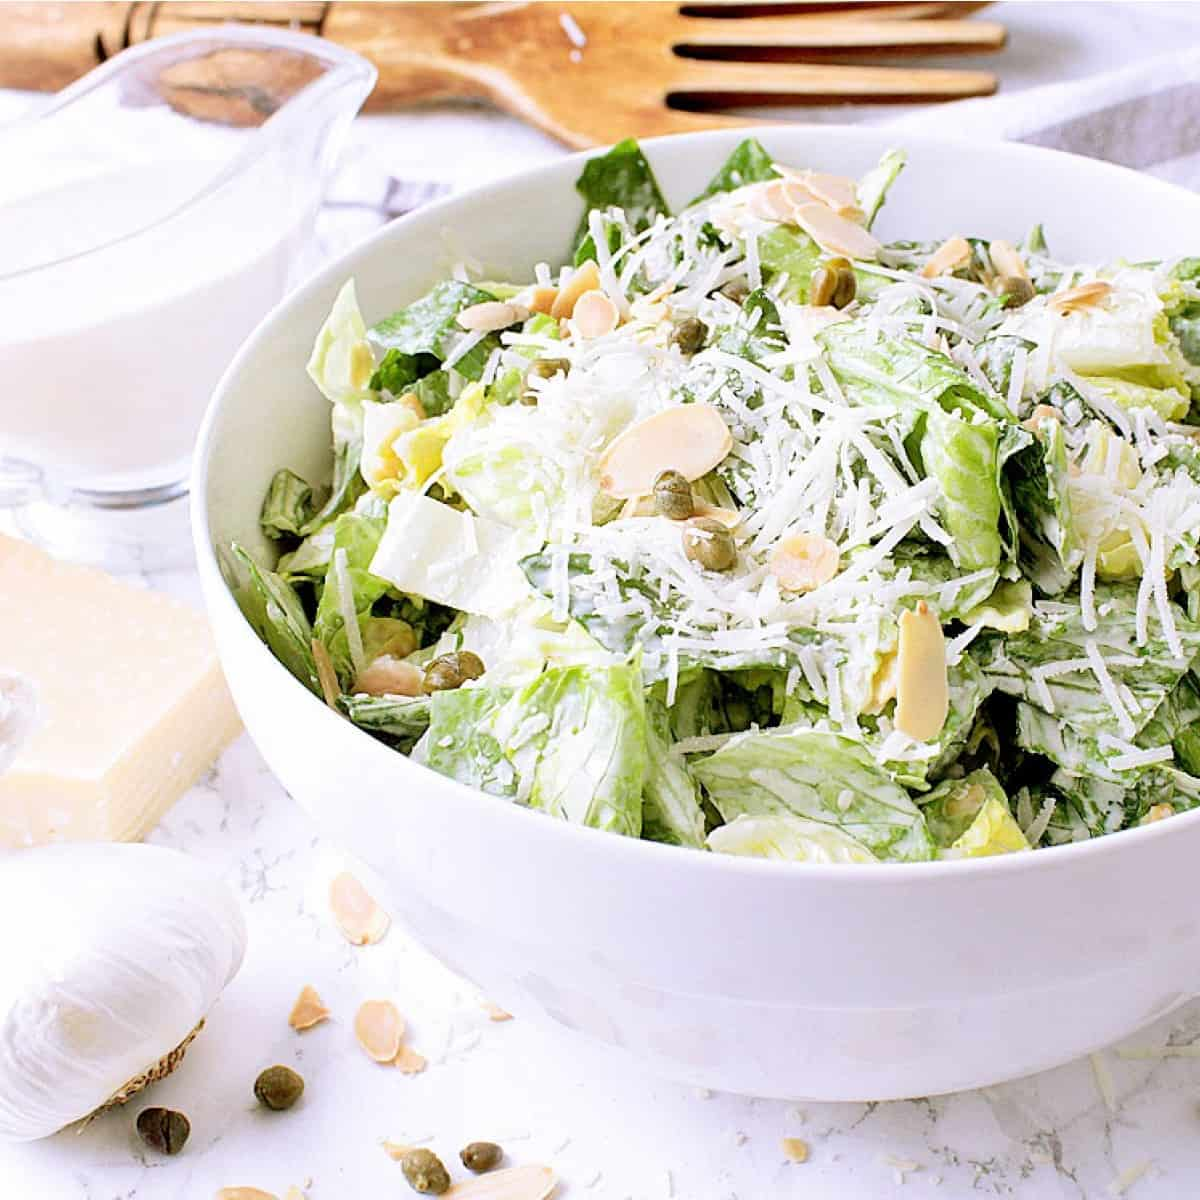 Check out this healthy and delicious Low Carb Caesar Salad with Kale, Romaine and Cheese Crisps for a keto approved version of the traditional caesar salad.